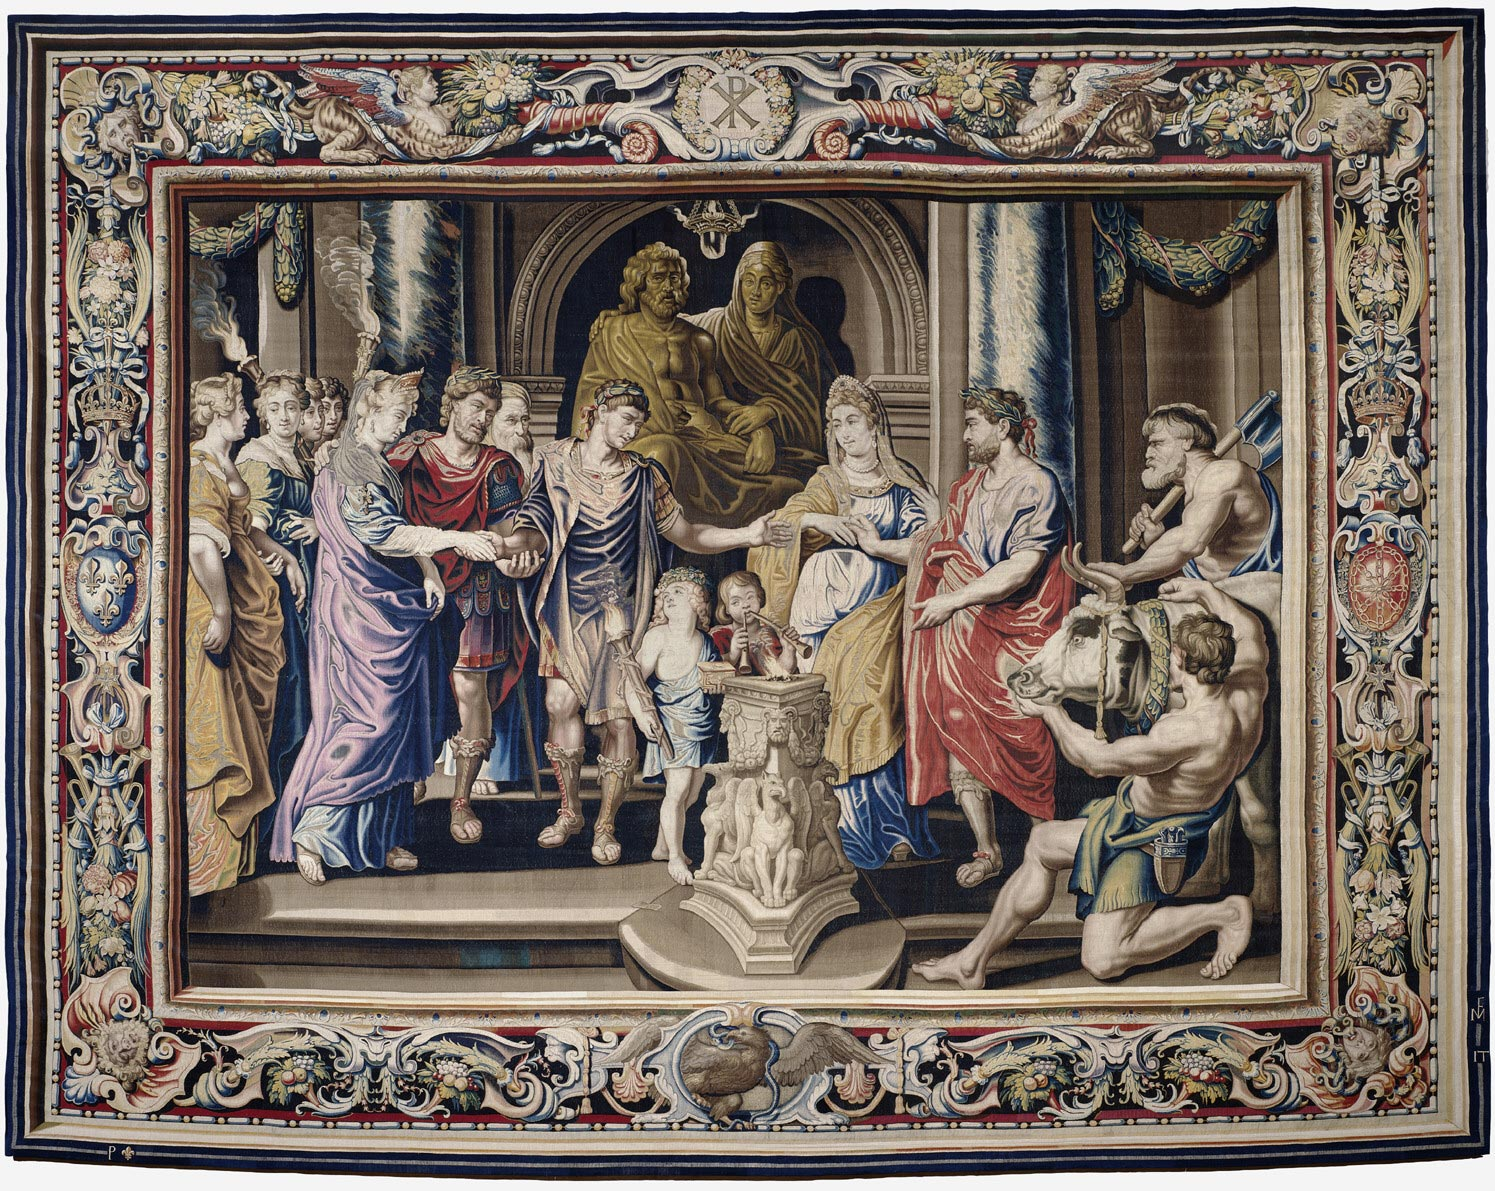 Tapestry showing the Marriage of Constantine and Fausta